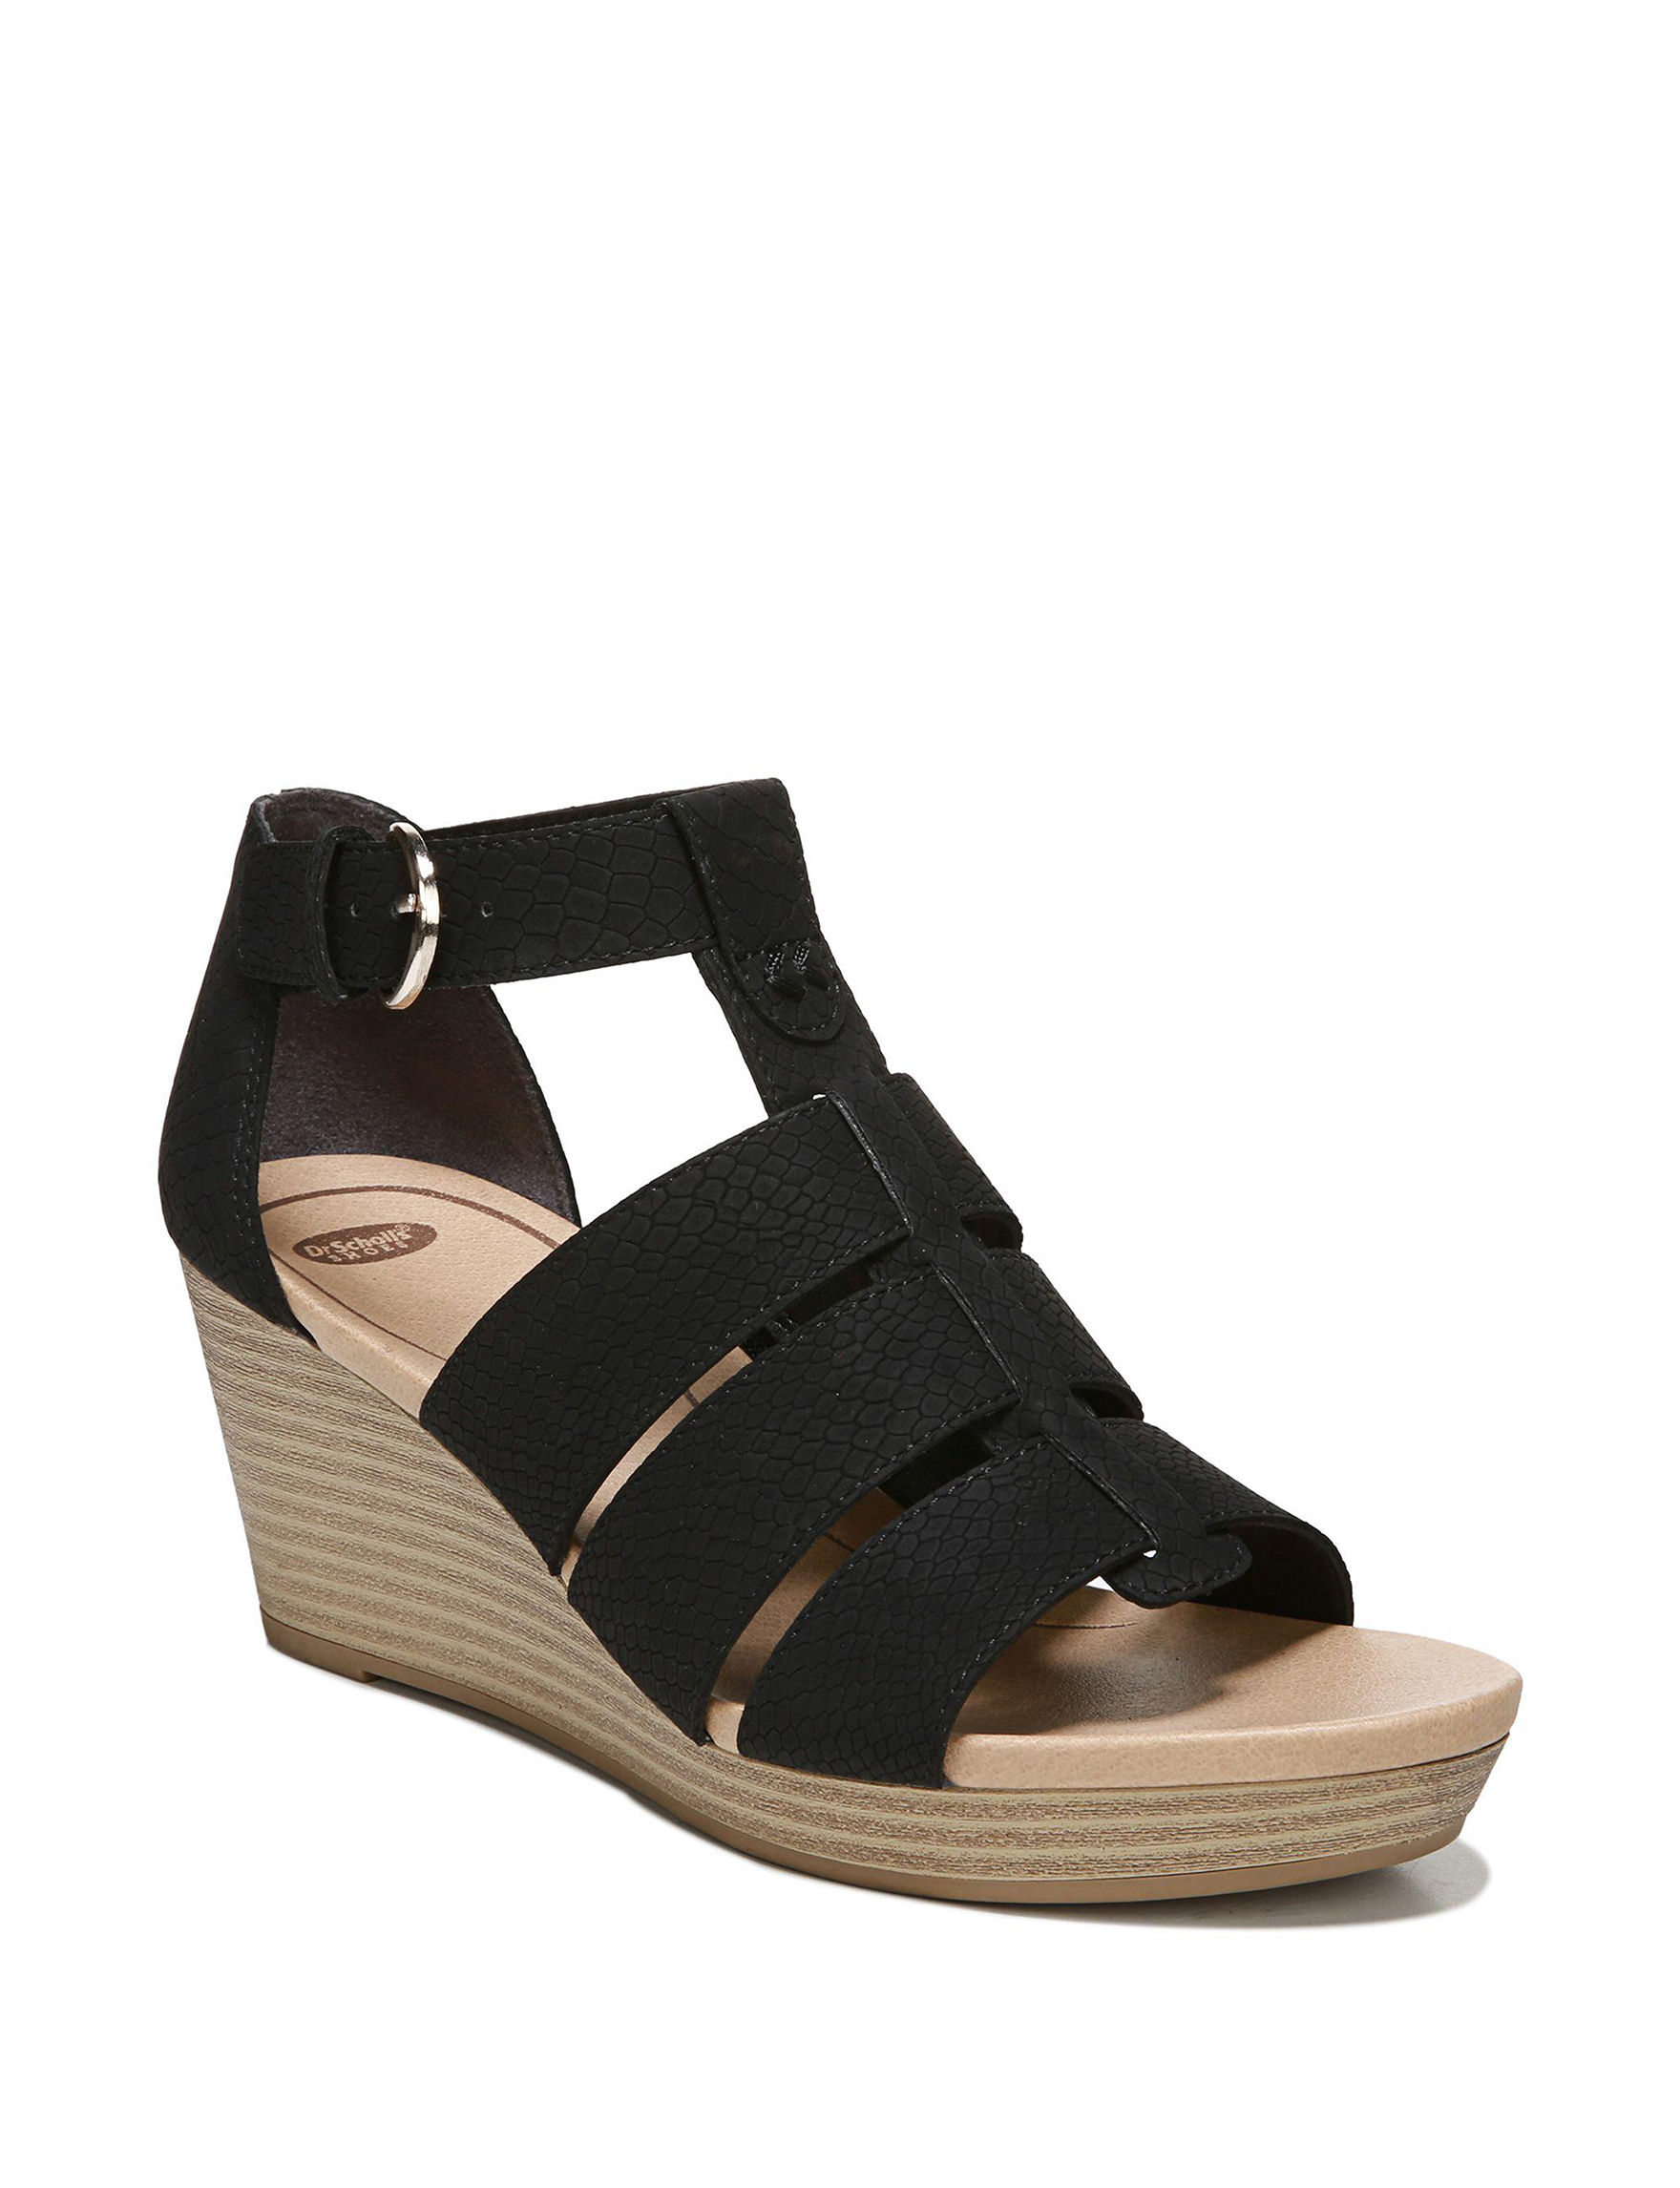 Dr. Scholl's Black Comfort Shoes Wedge Sandals